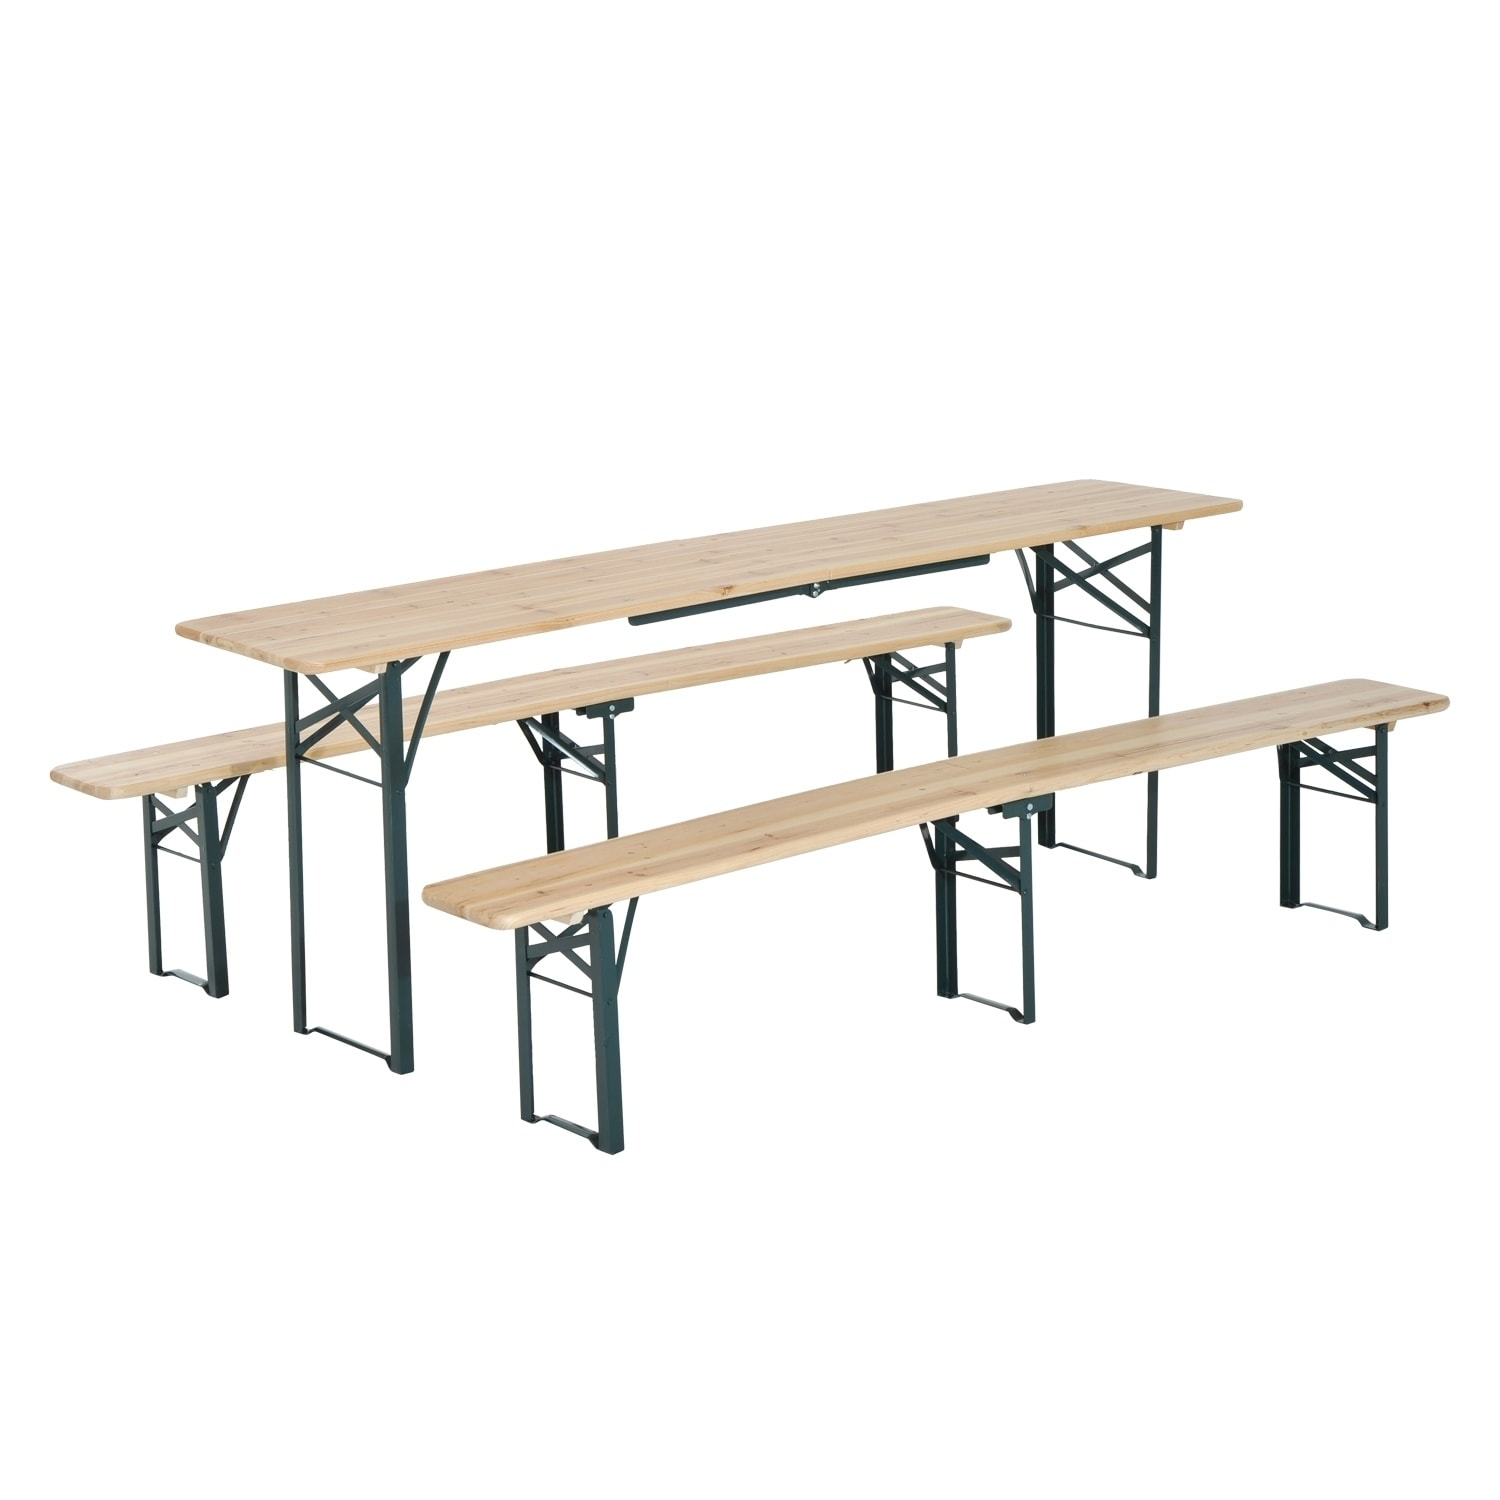 Outsunny 7ft Wooden Folding Picnic Table Set with Benches...